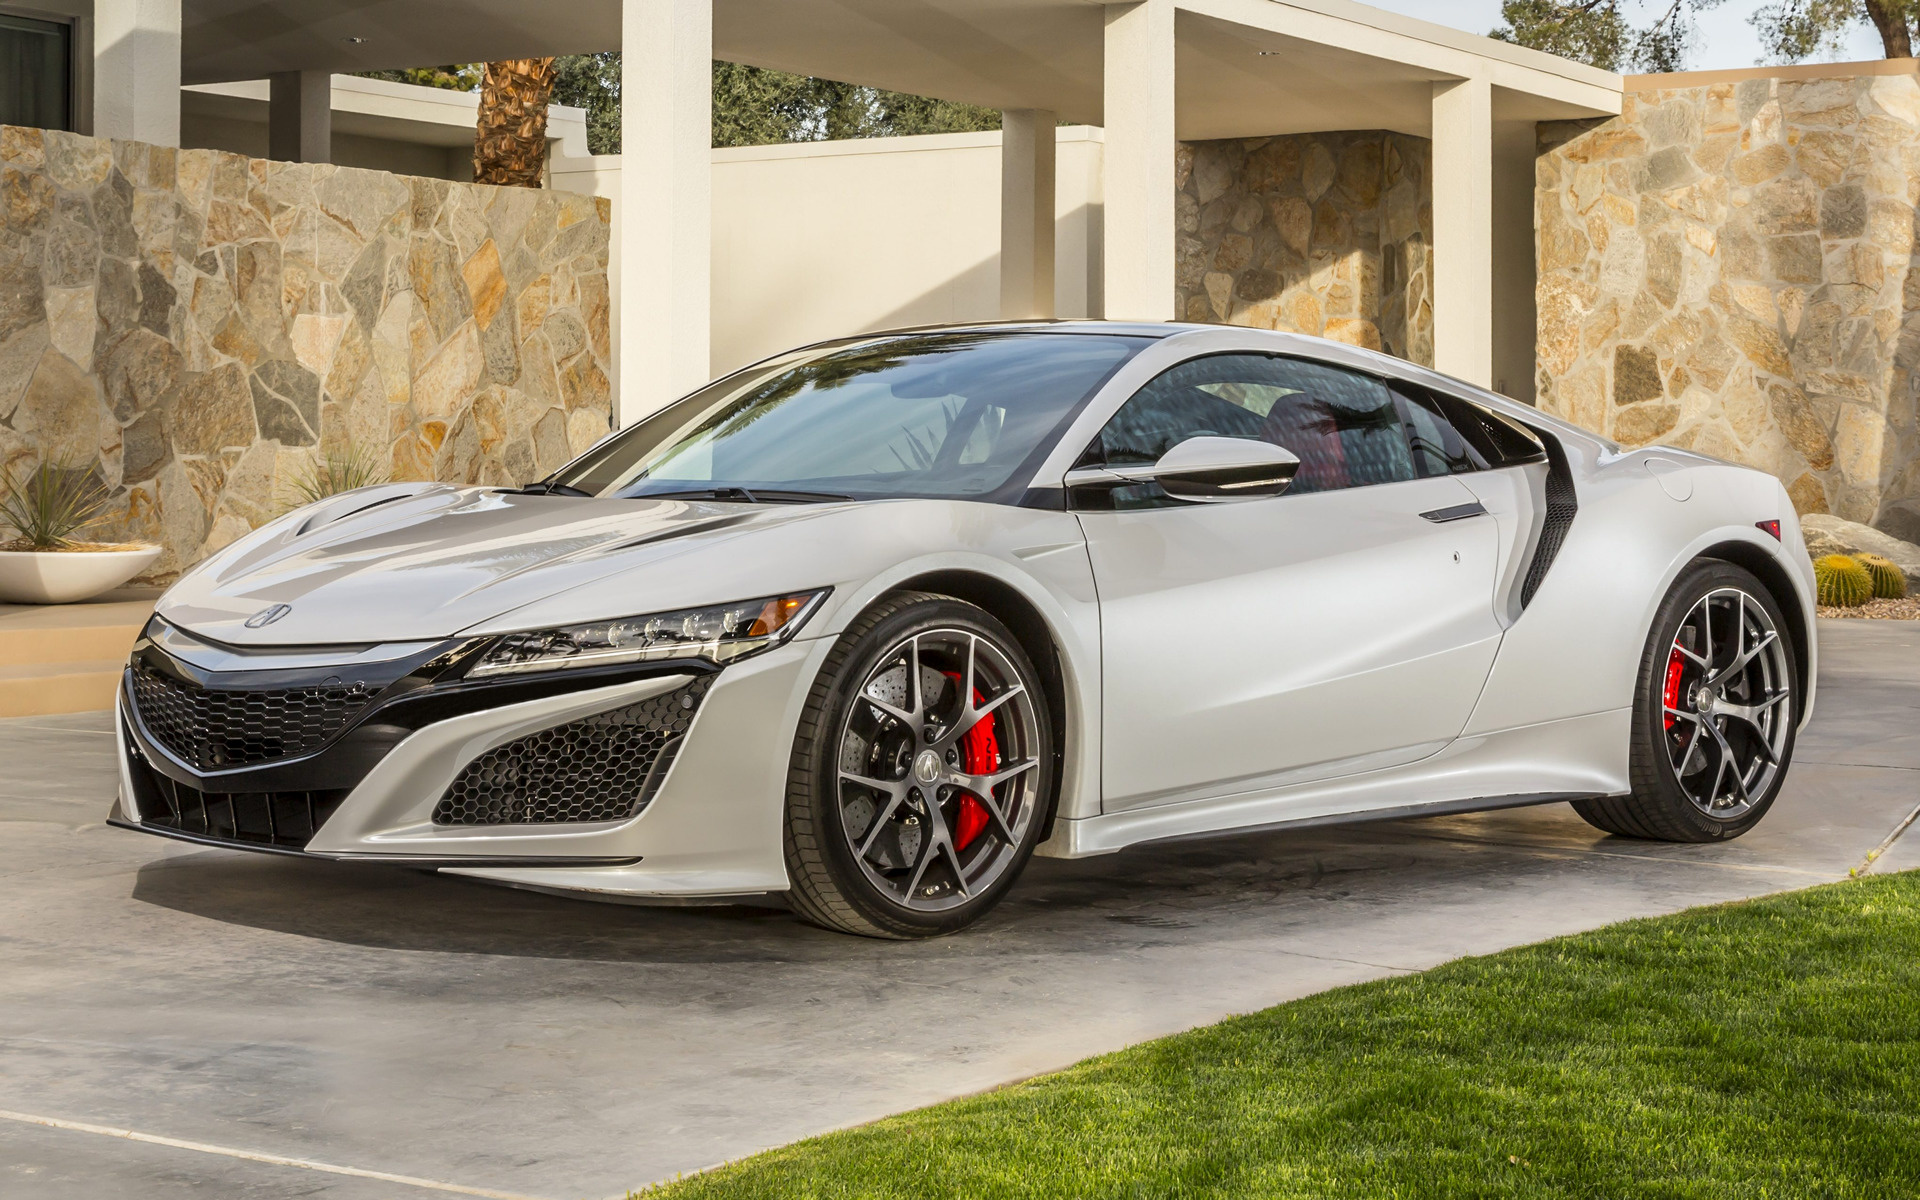 World Car Kia >> 2017 Acura NSX - Wallpapers and HD Images | Car Pixel